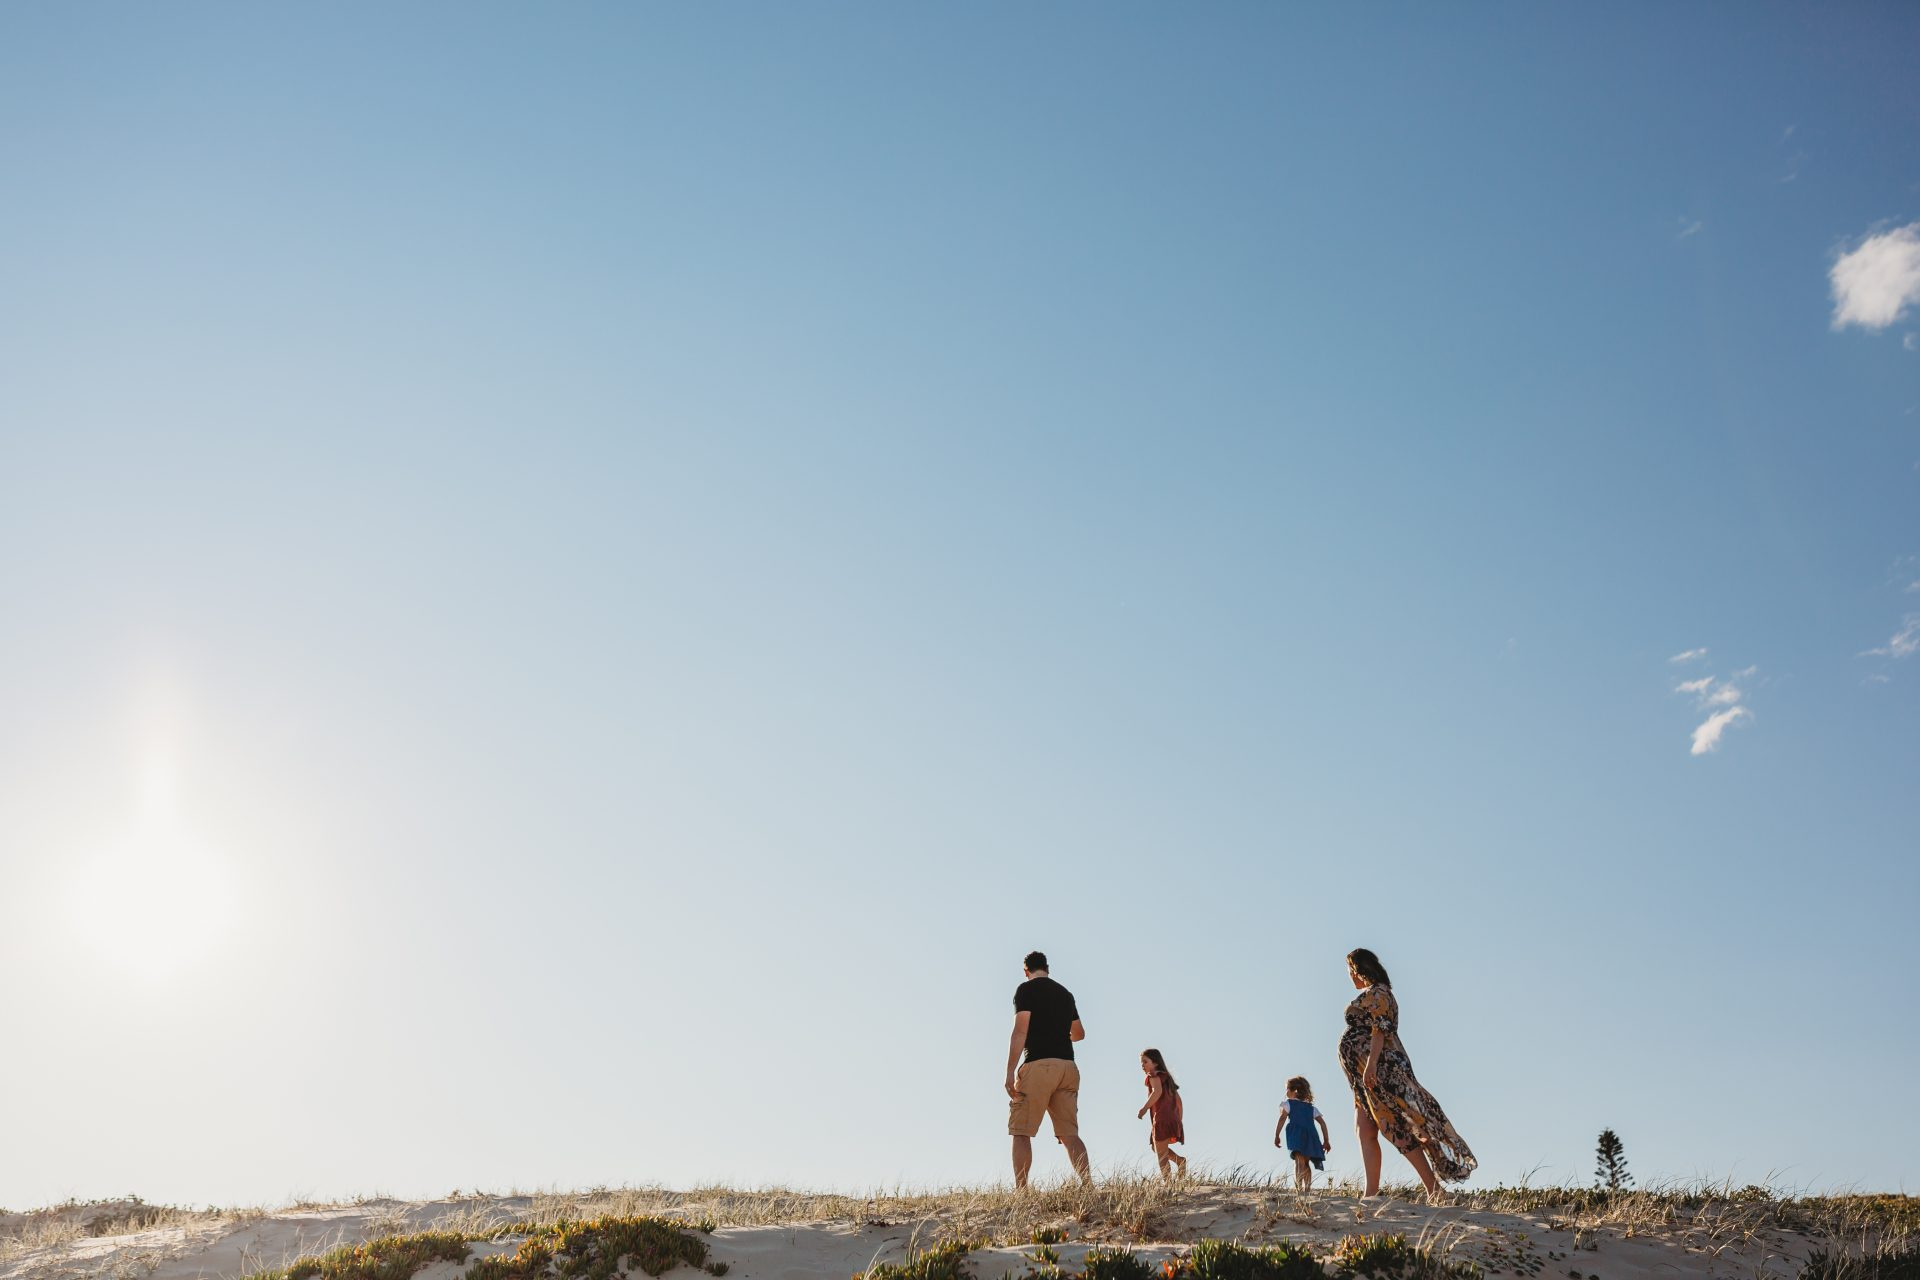 Family walking along the sand, in single file